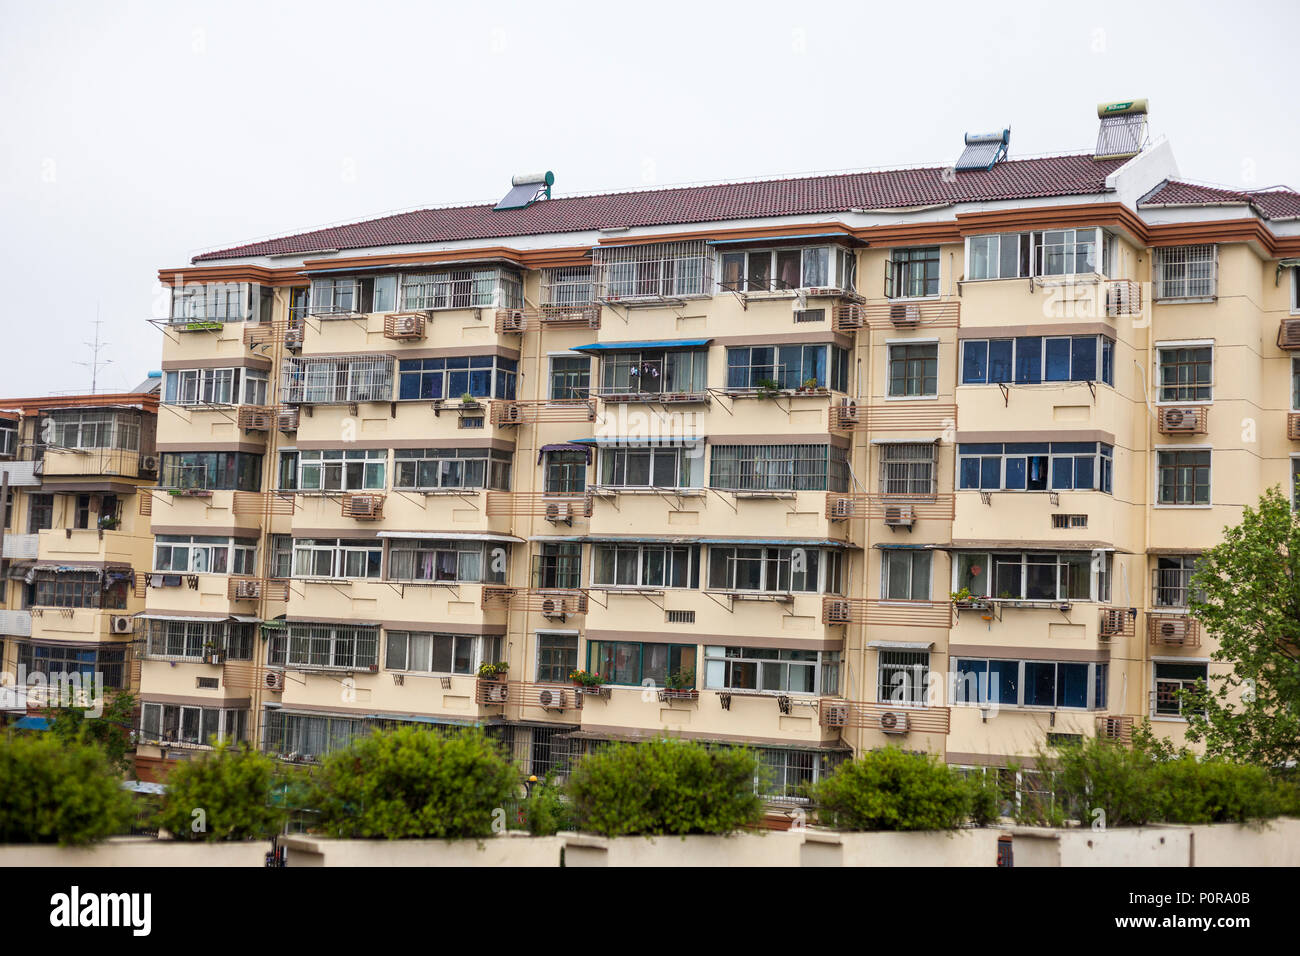 Nanjing, Jiangsu, China.  Apartment Building with Individual Air Conditioners for Each Flat.  Note Solar Water Heaters on Roof. - Stock Image